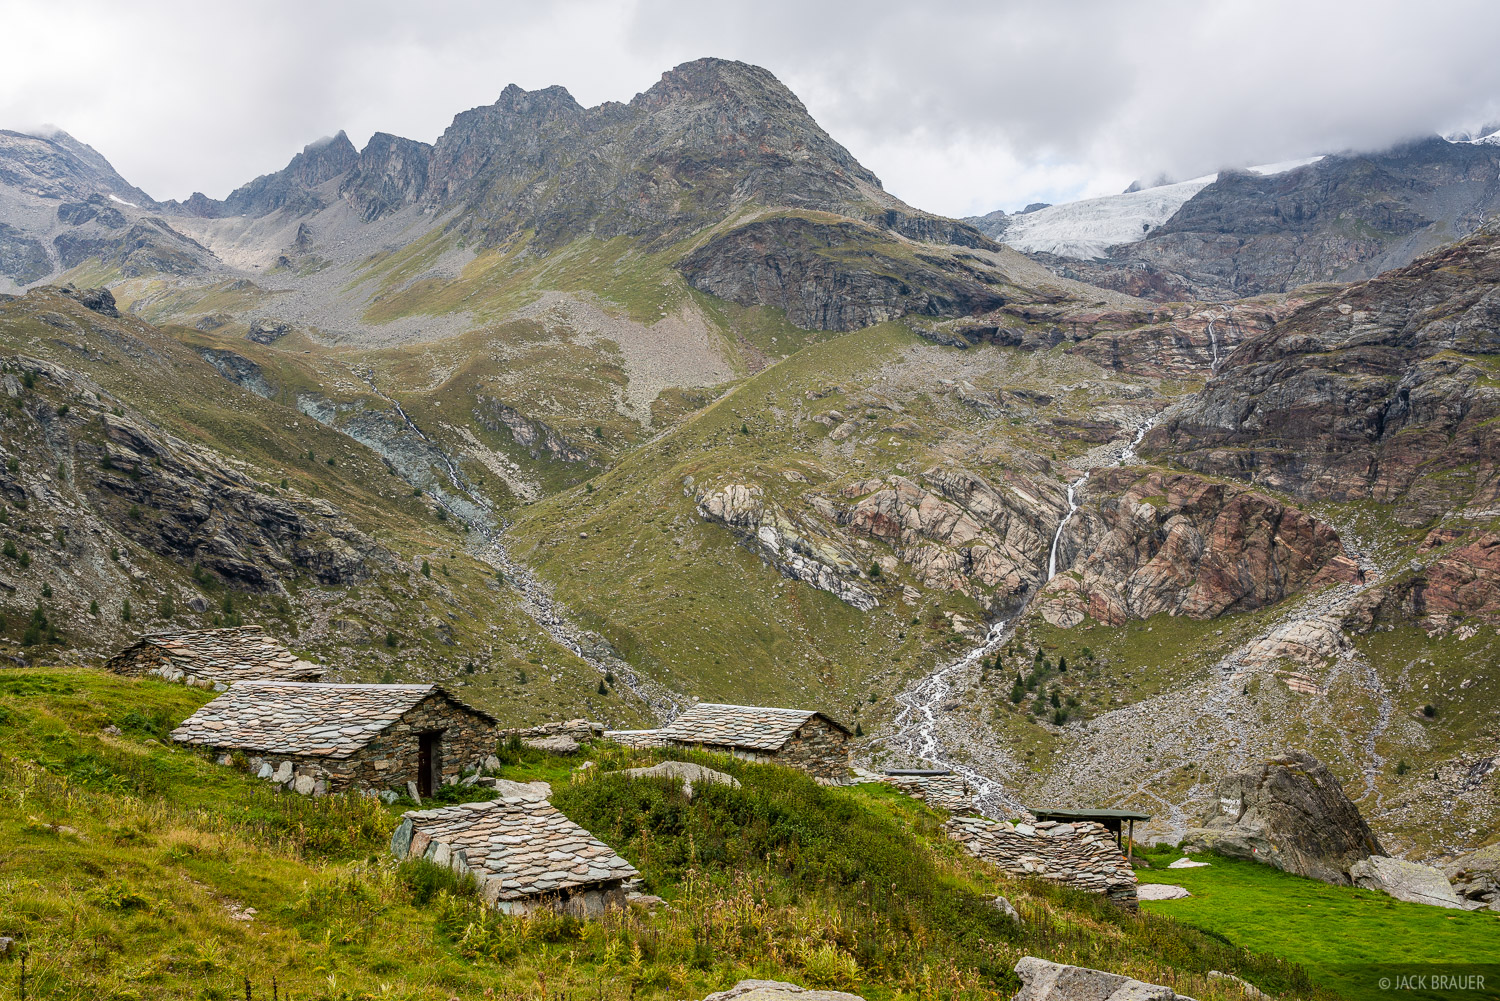 Alpe Gembré, Bernina Range, Italy, Rhaetian Alps, hut, photo